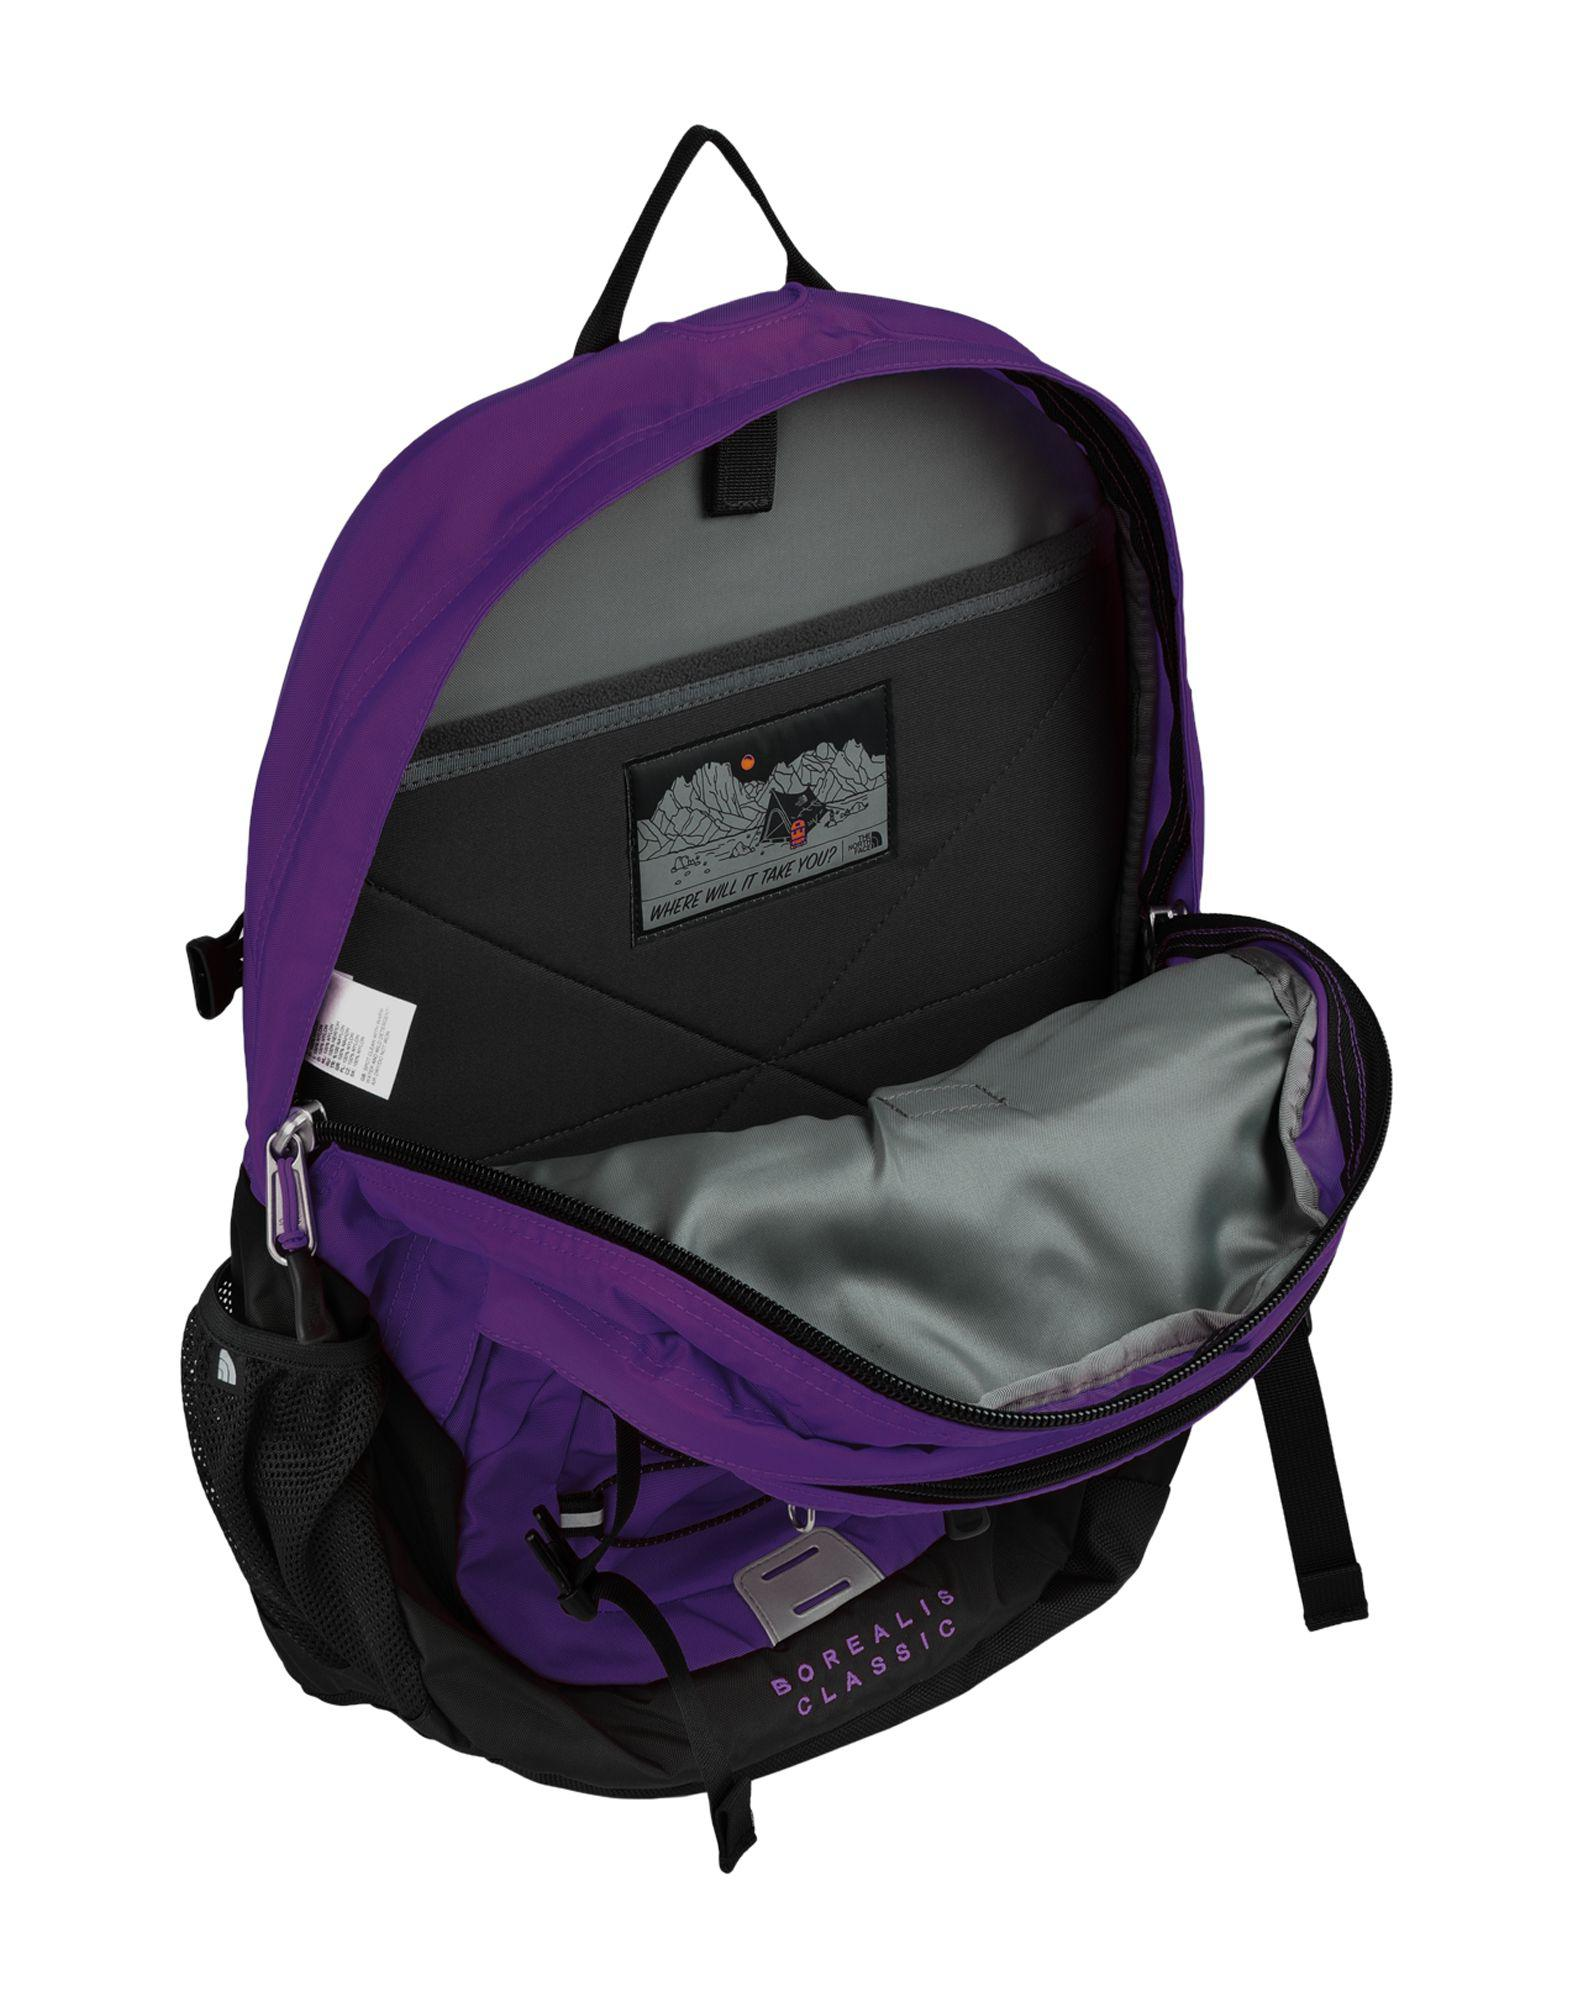 23ecb8e9cc The North Face Backpacks   Bum Bags in Purple - Lyst